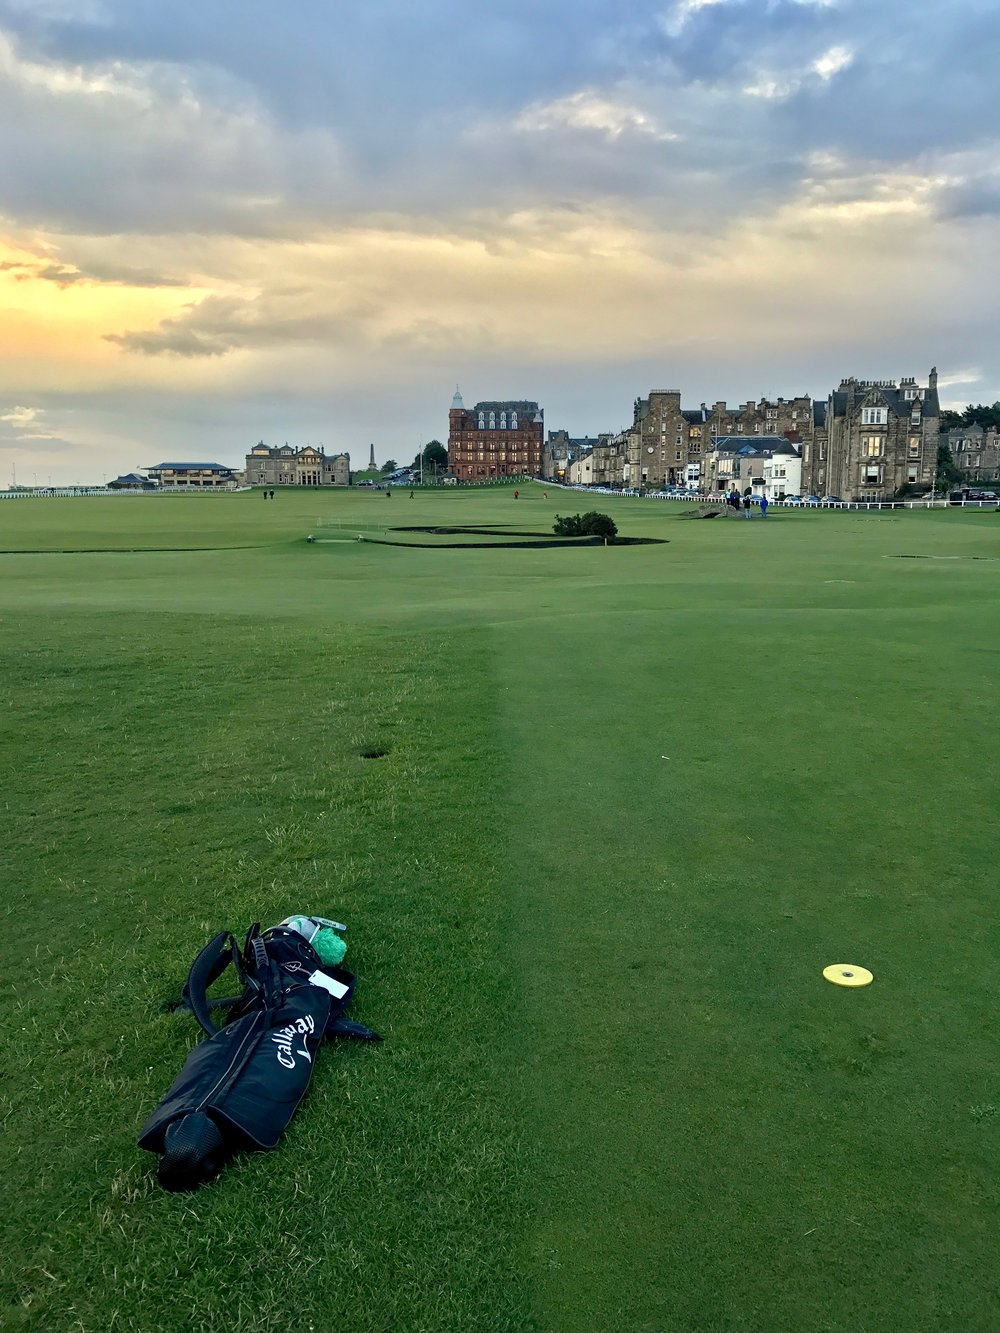 hochstein-design-best-of-2017-part-3-st-andrews-old-course-playing-18-tee.jpg